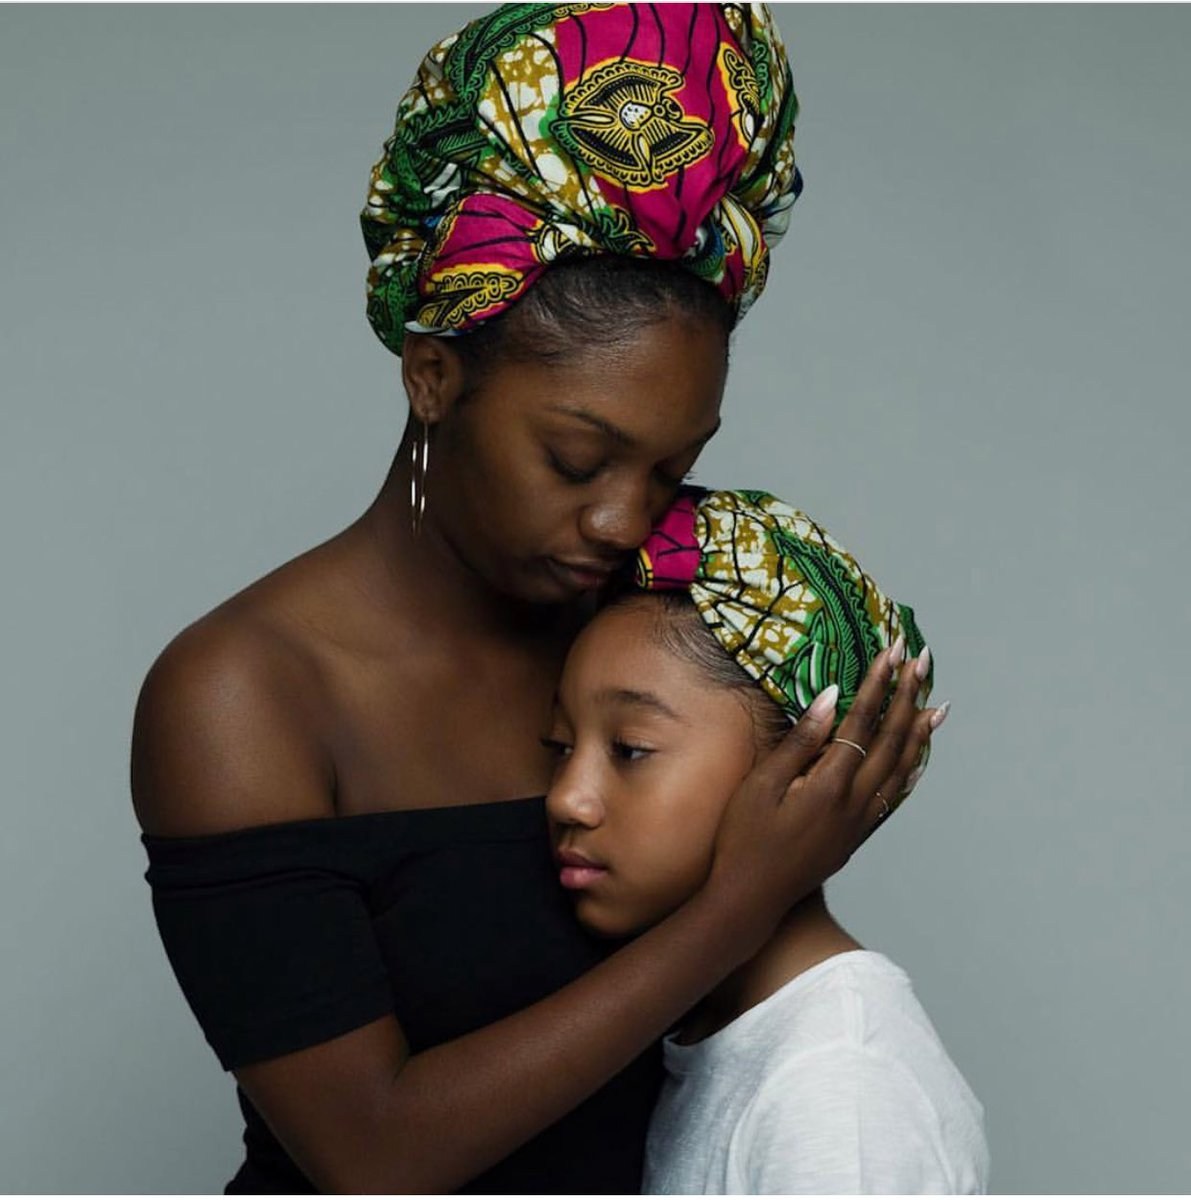 Chin up princess. Or the crown slips   #MothersDay #HaitianMothersDay<br>http://pic.twitter.com/igXQeD1B6c